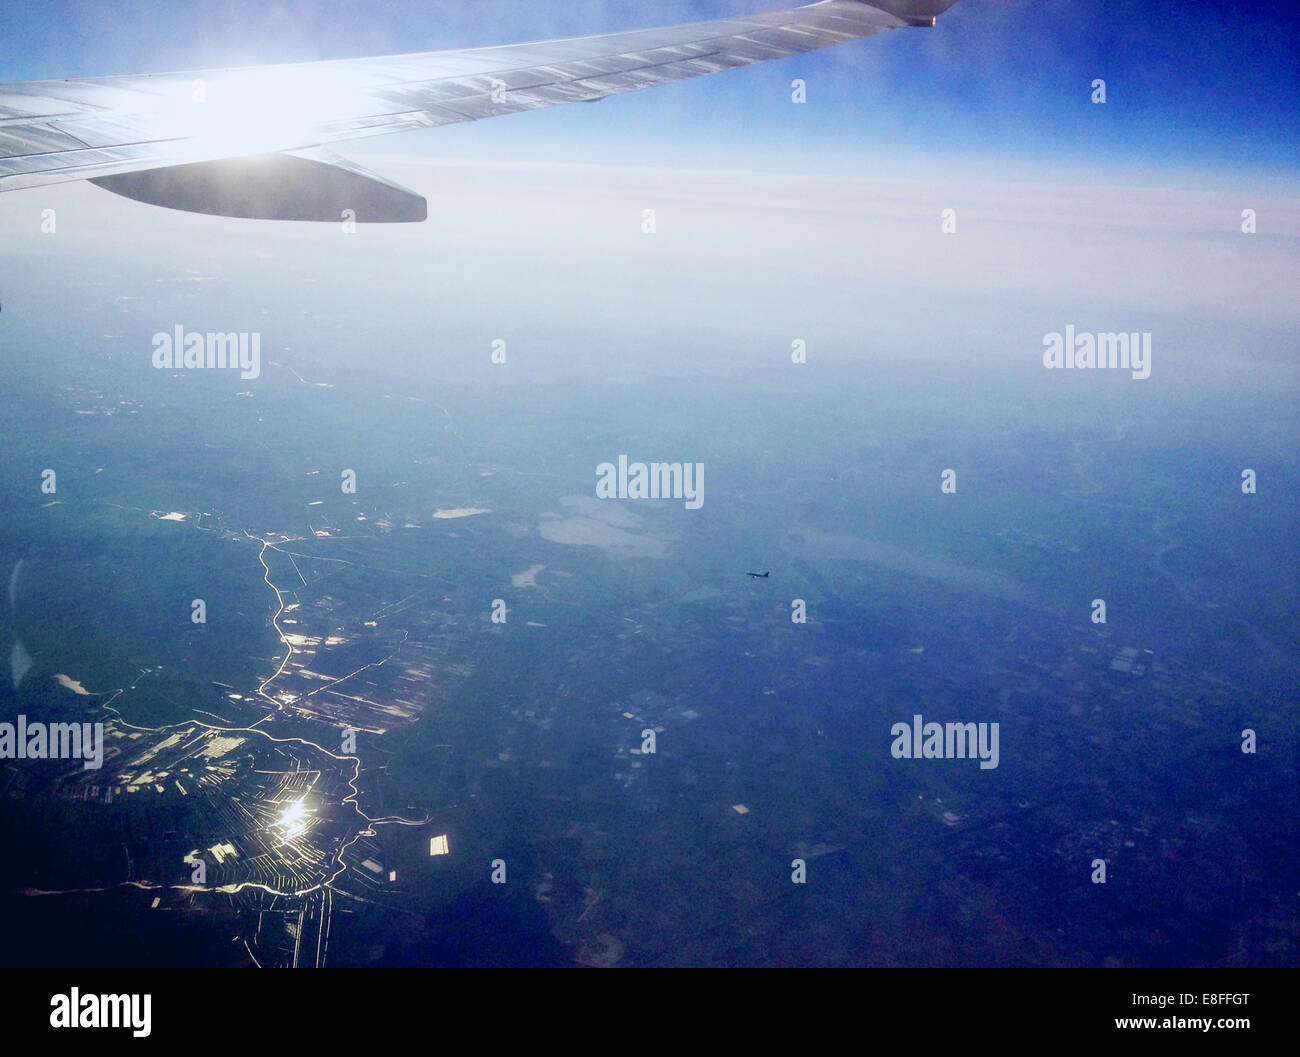 View of airplane wing from vehicle interior/airplane window - Stock Image